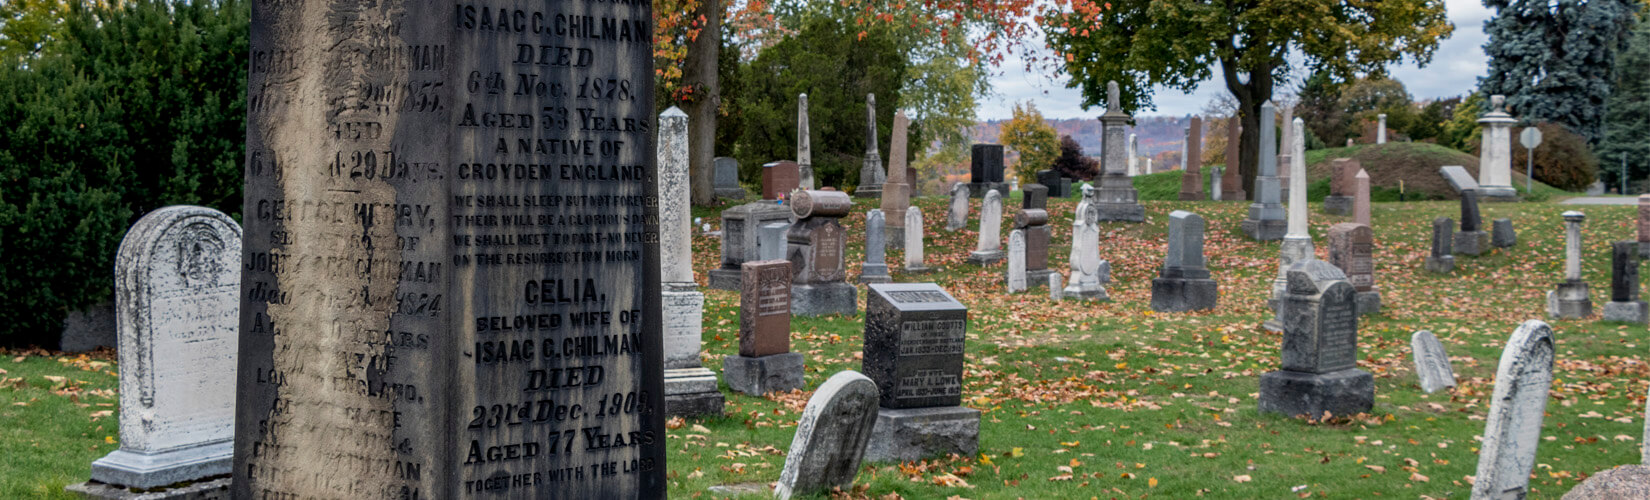 Haunted Places in Hamilton: 15+ Sites For Some Spooky Encounters :: I've Been Bit! Travel Blog